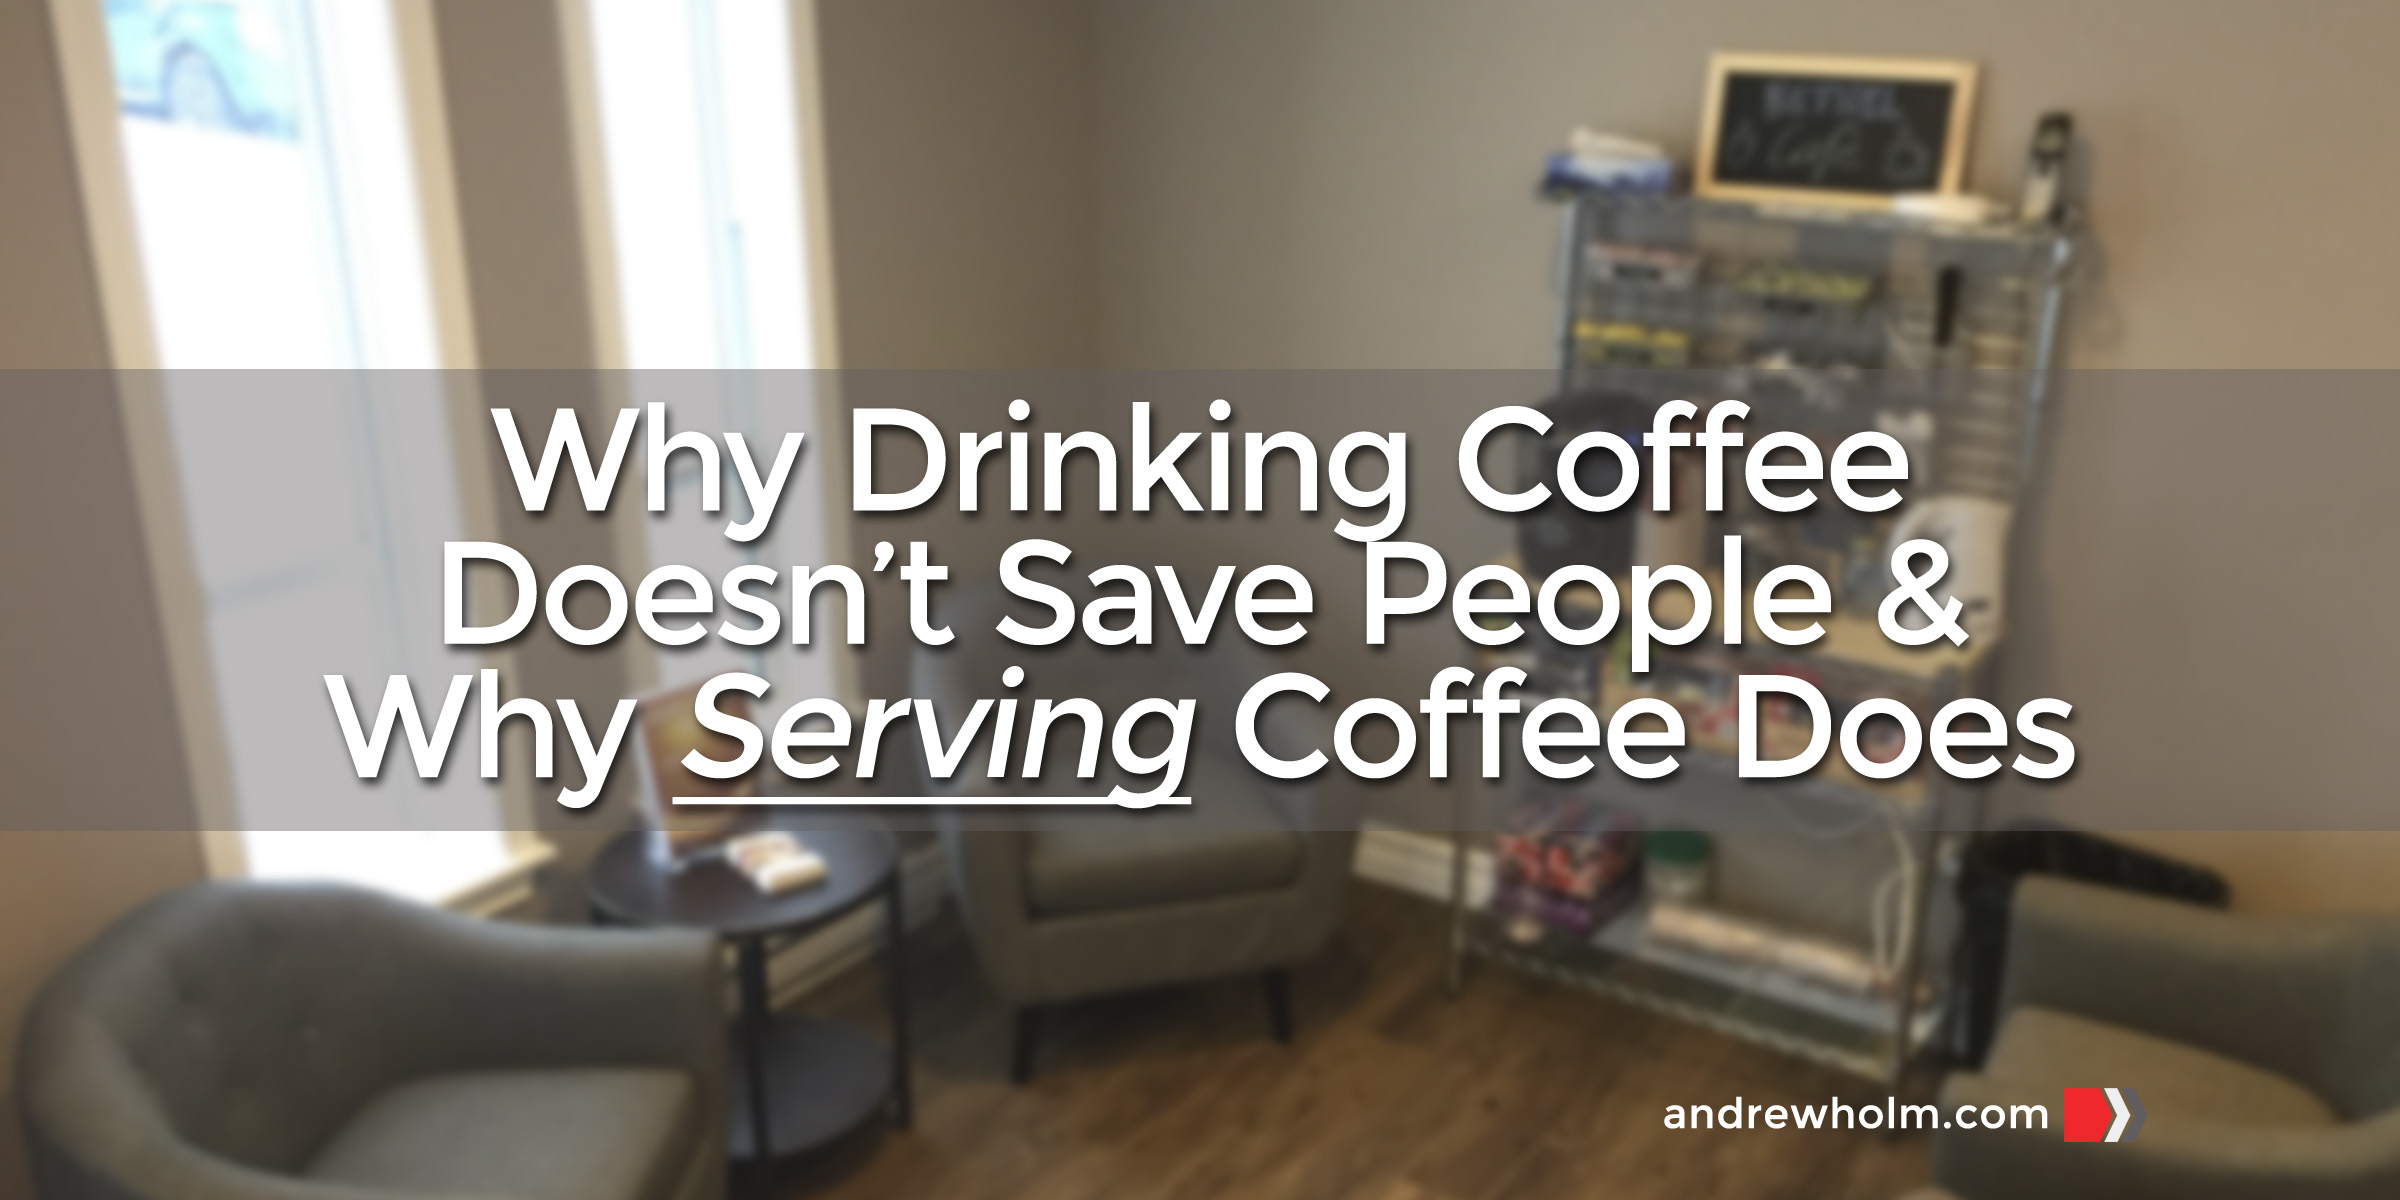 Why Serving Coffee Matters